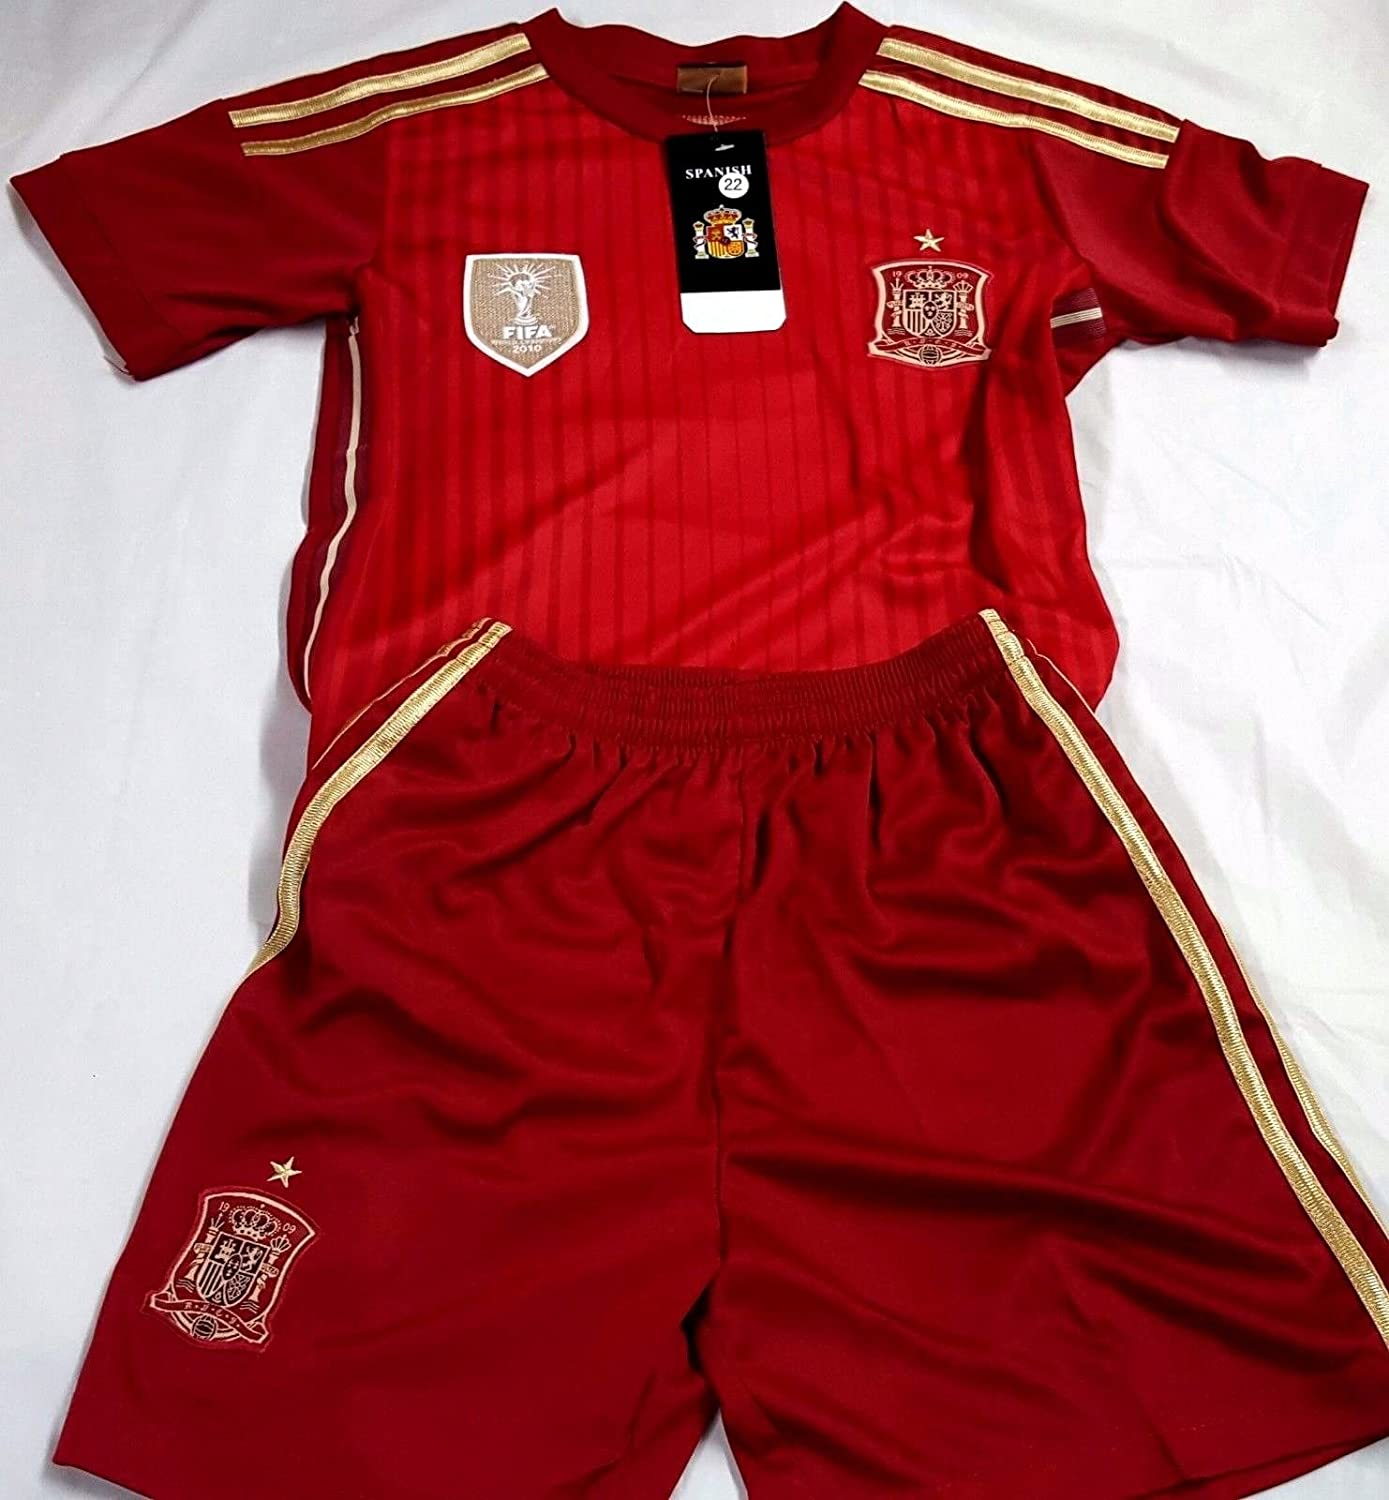 新しい。Spain National Team Jersey and Short SetキッズL ( 6 – 7歳) B07BJN383G